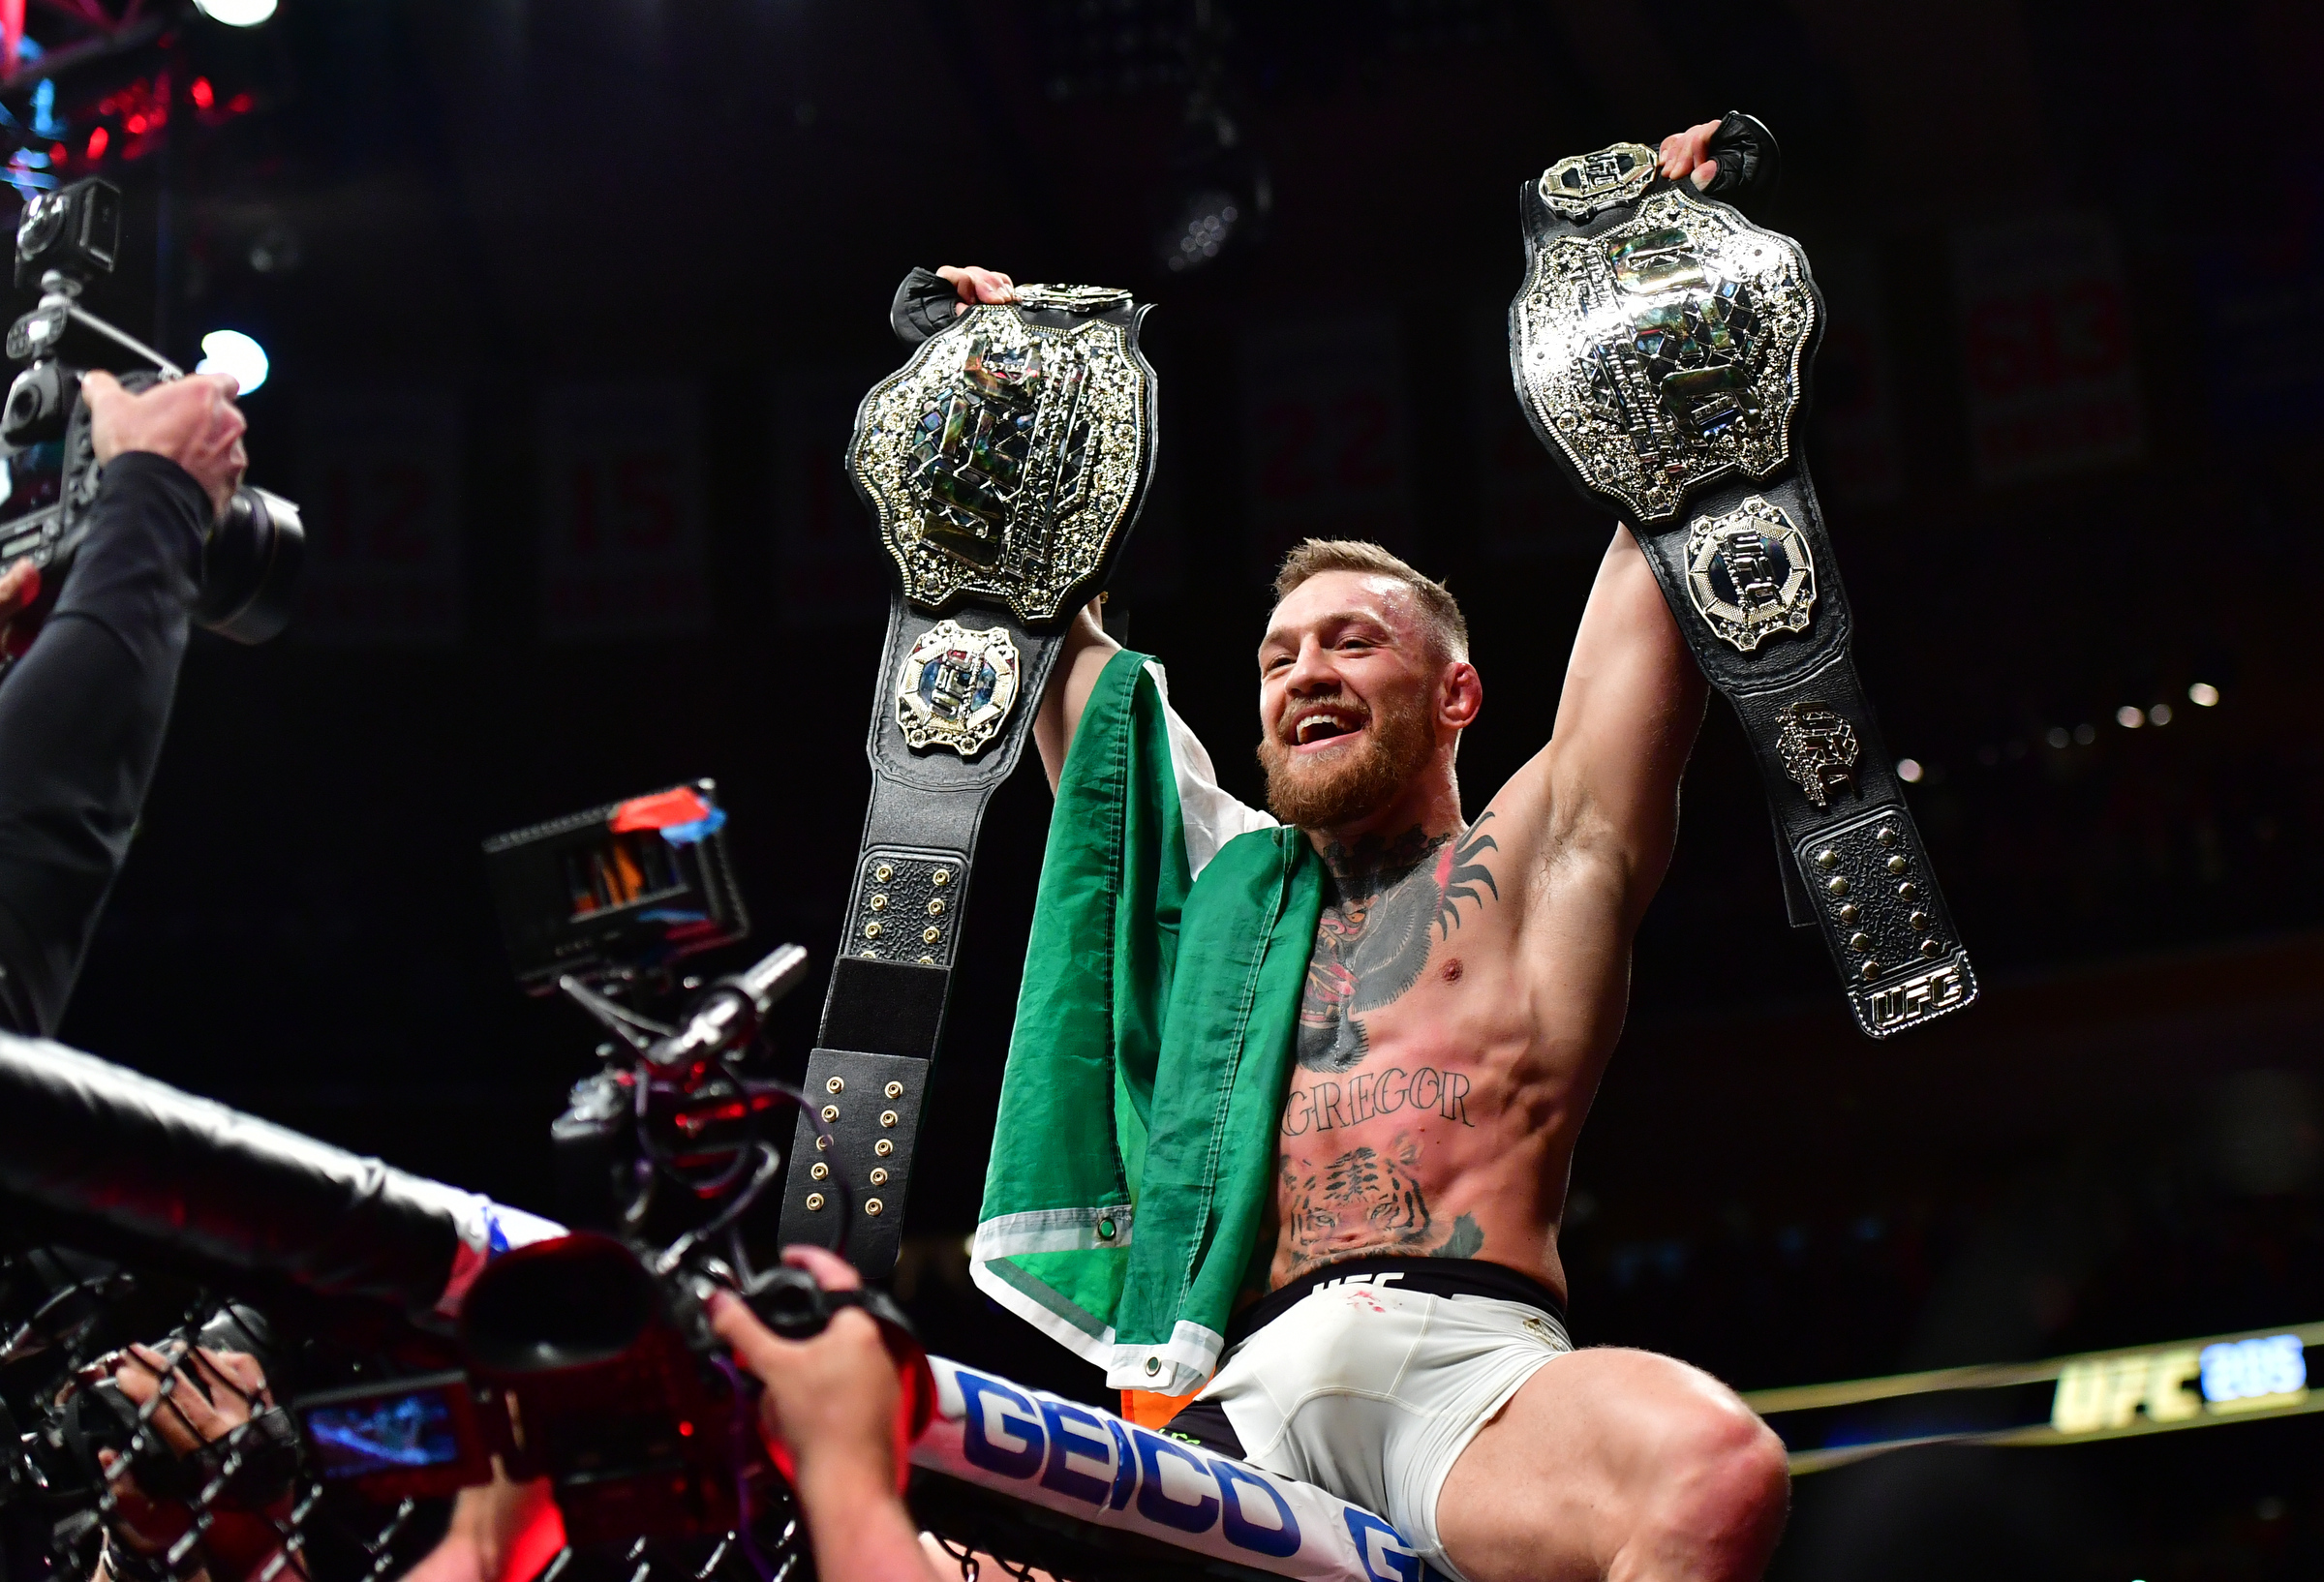 Conor McGregor jumps into cage and rows with referee